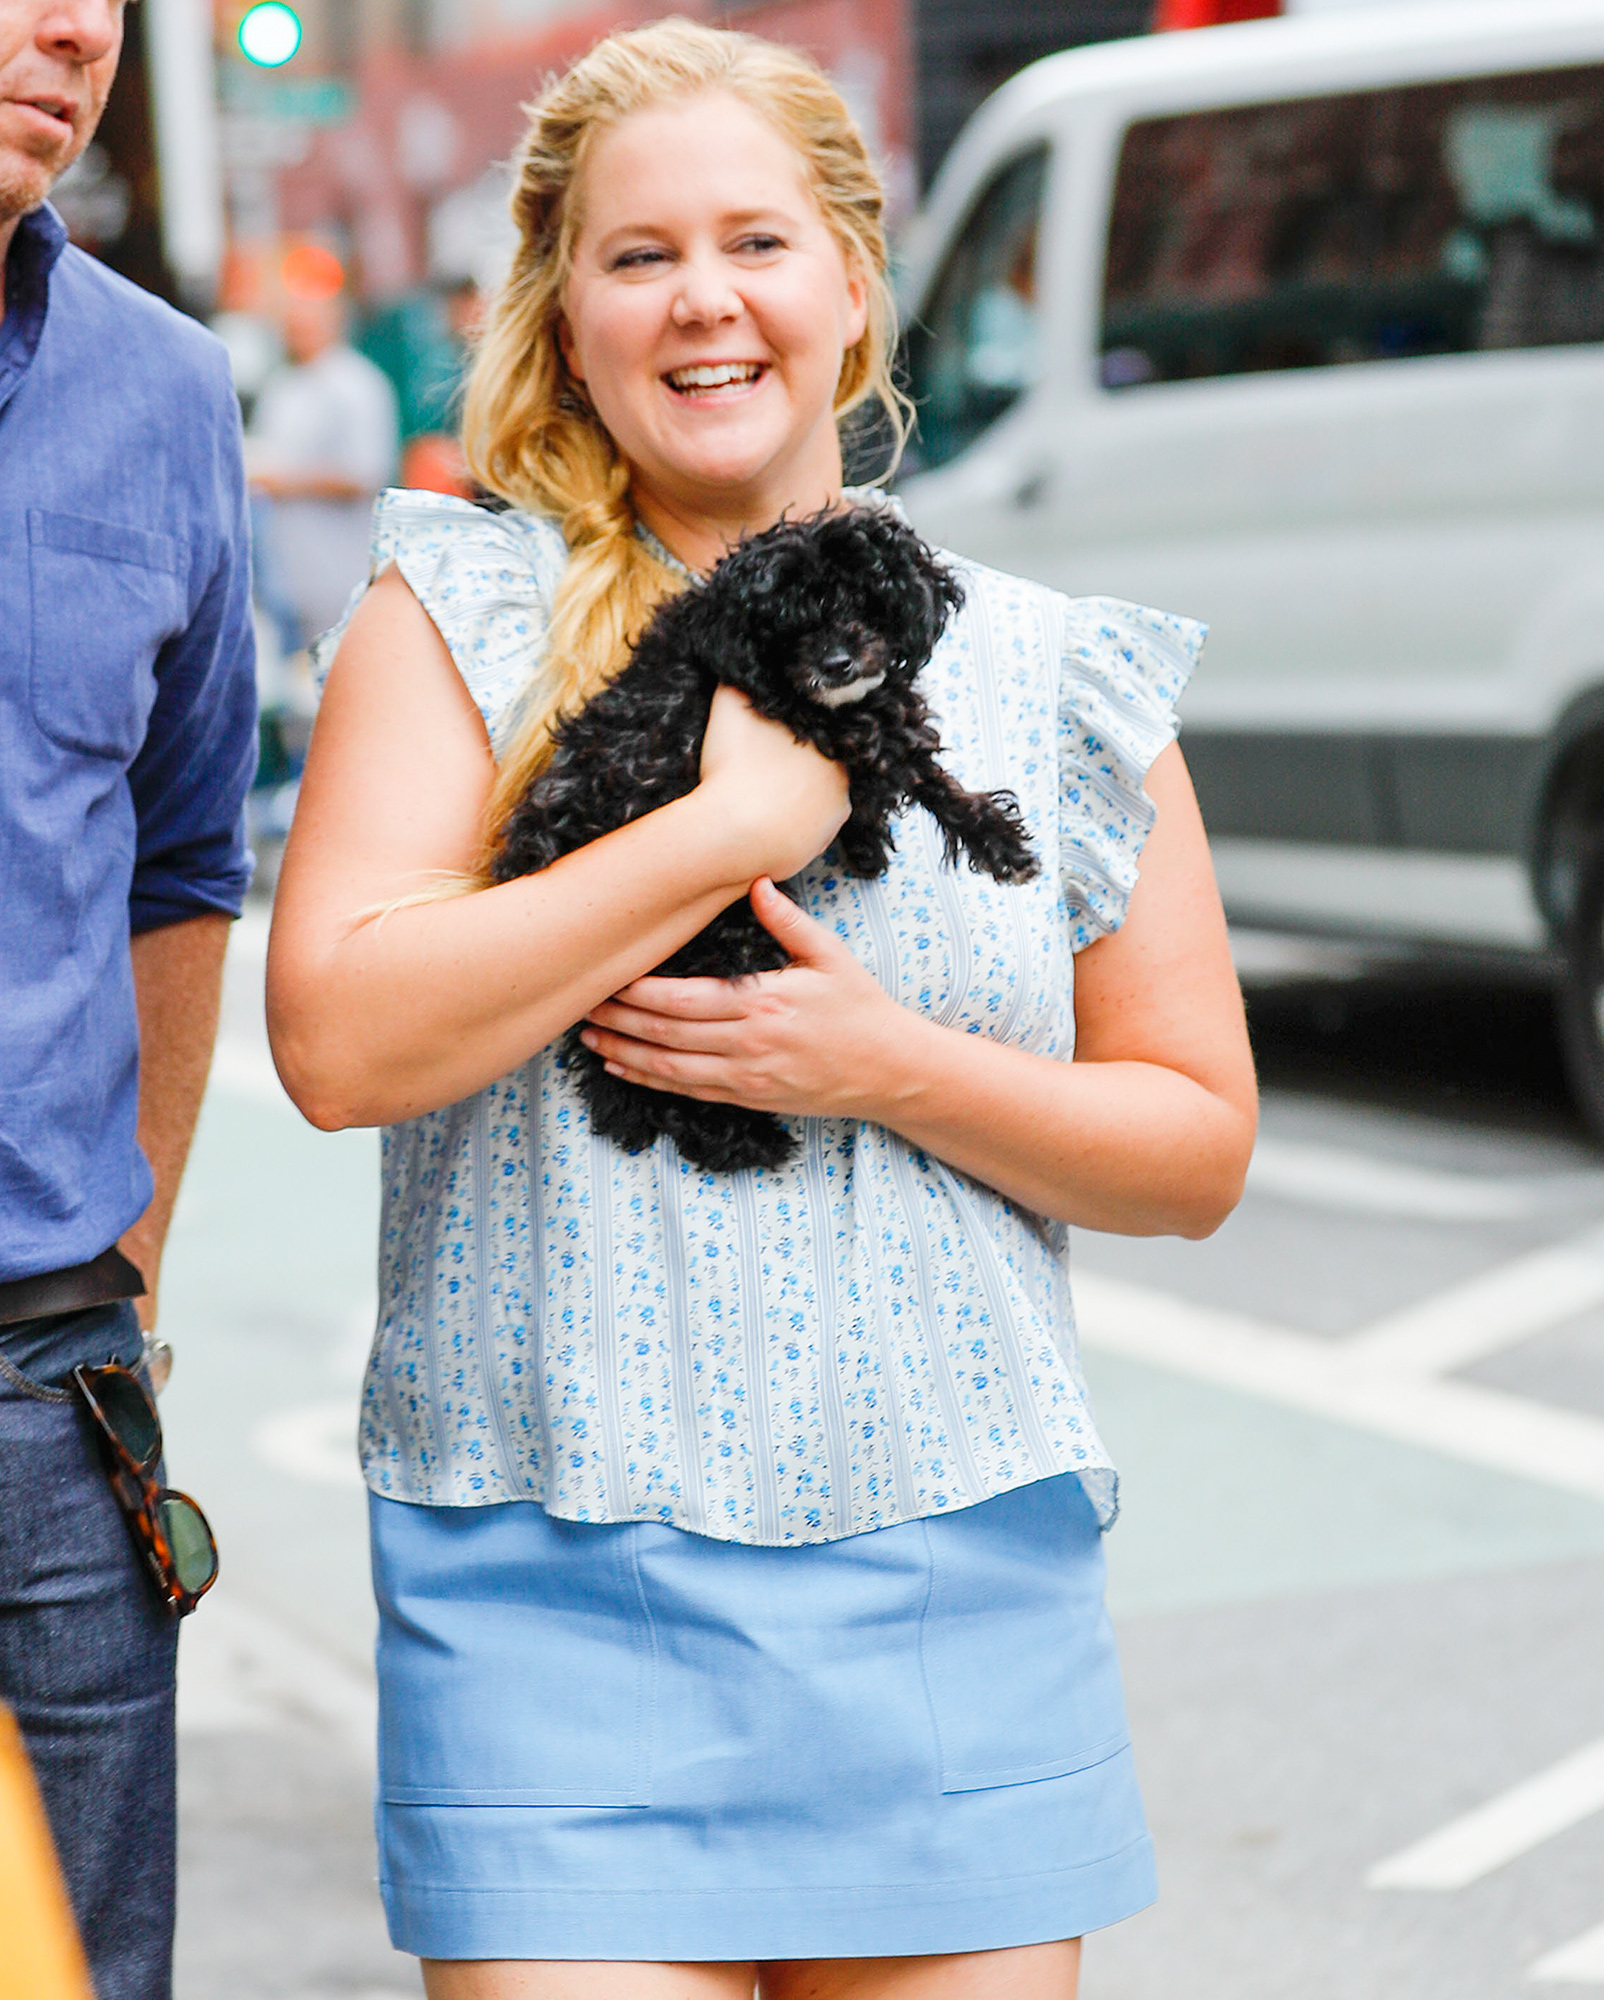 Amy Schumer carries her dog while out and about in New York